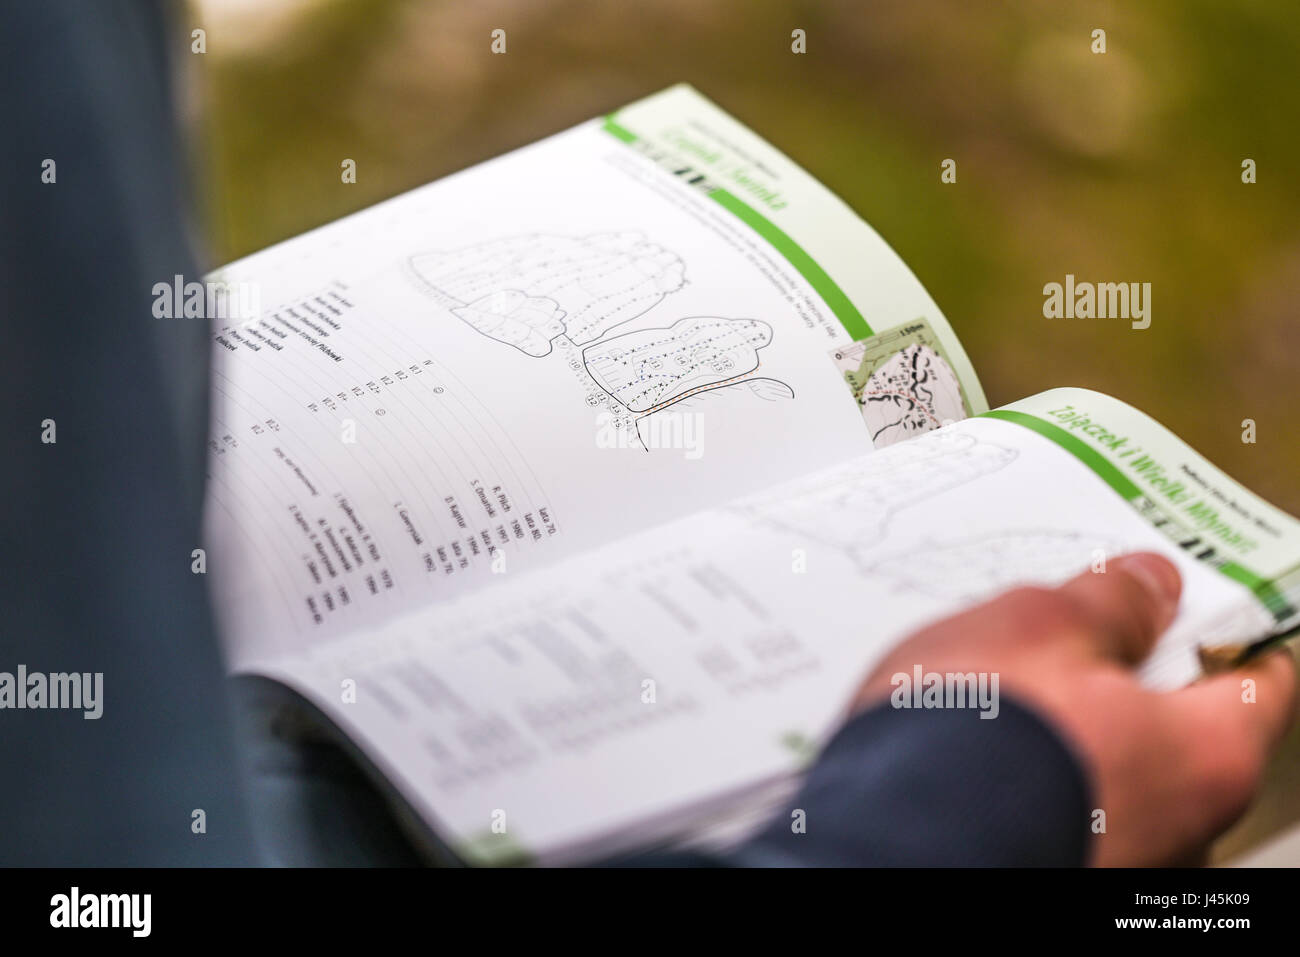 Climber holdin a topo book in his hands. - Stock Image